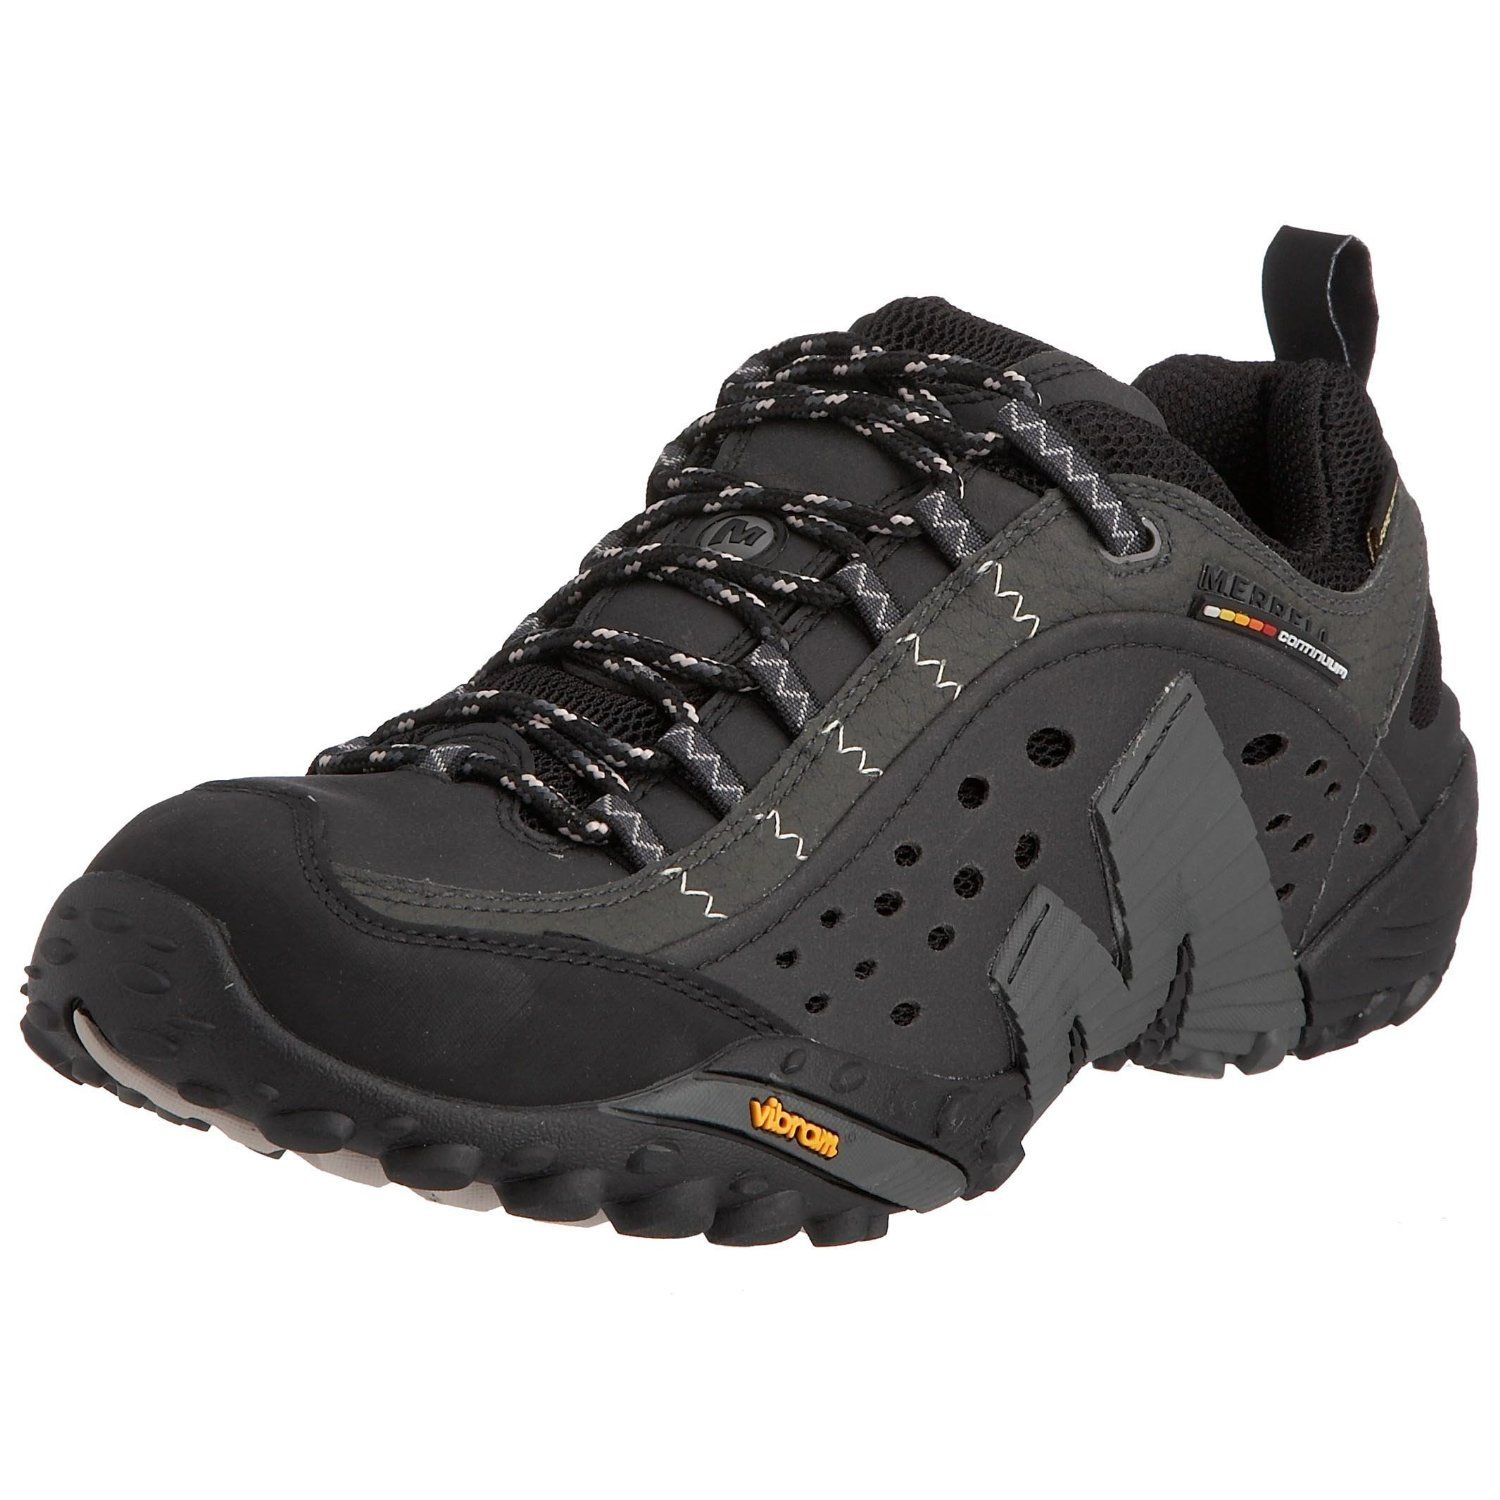 Senderismo Intercept Gtx Merrell HombreAmazon De Zapatillas Para 1cKJl3TF